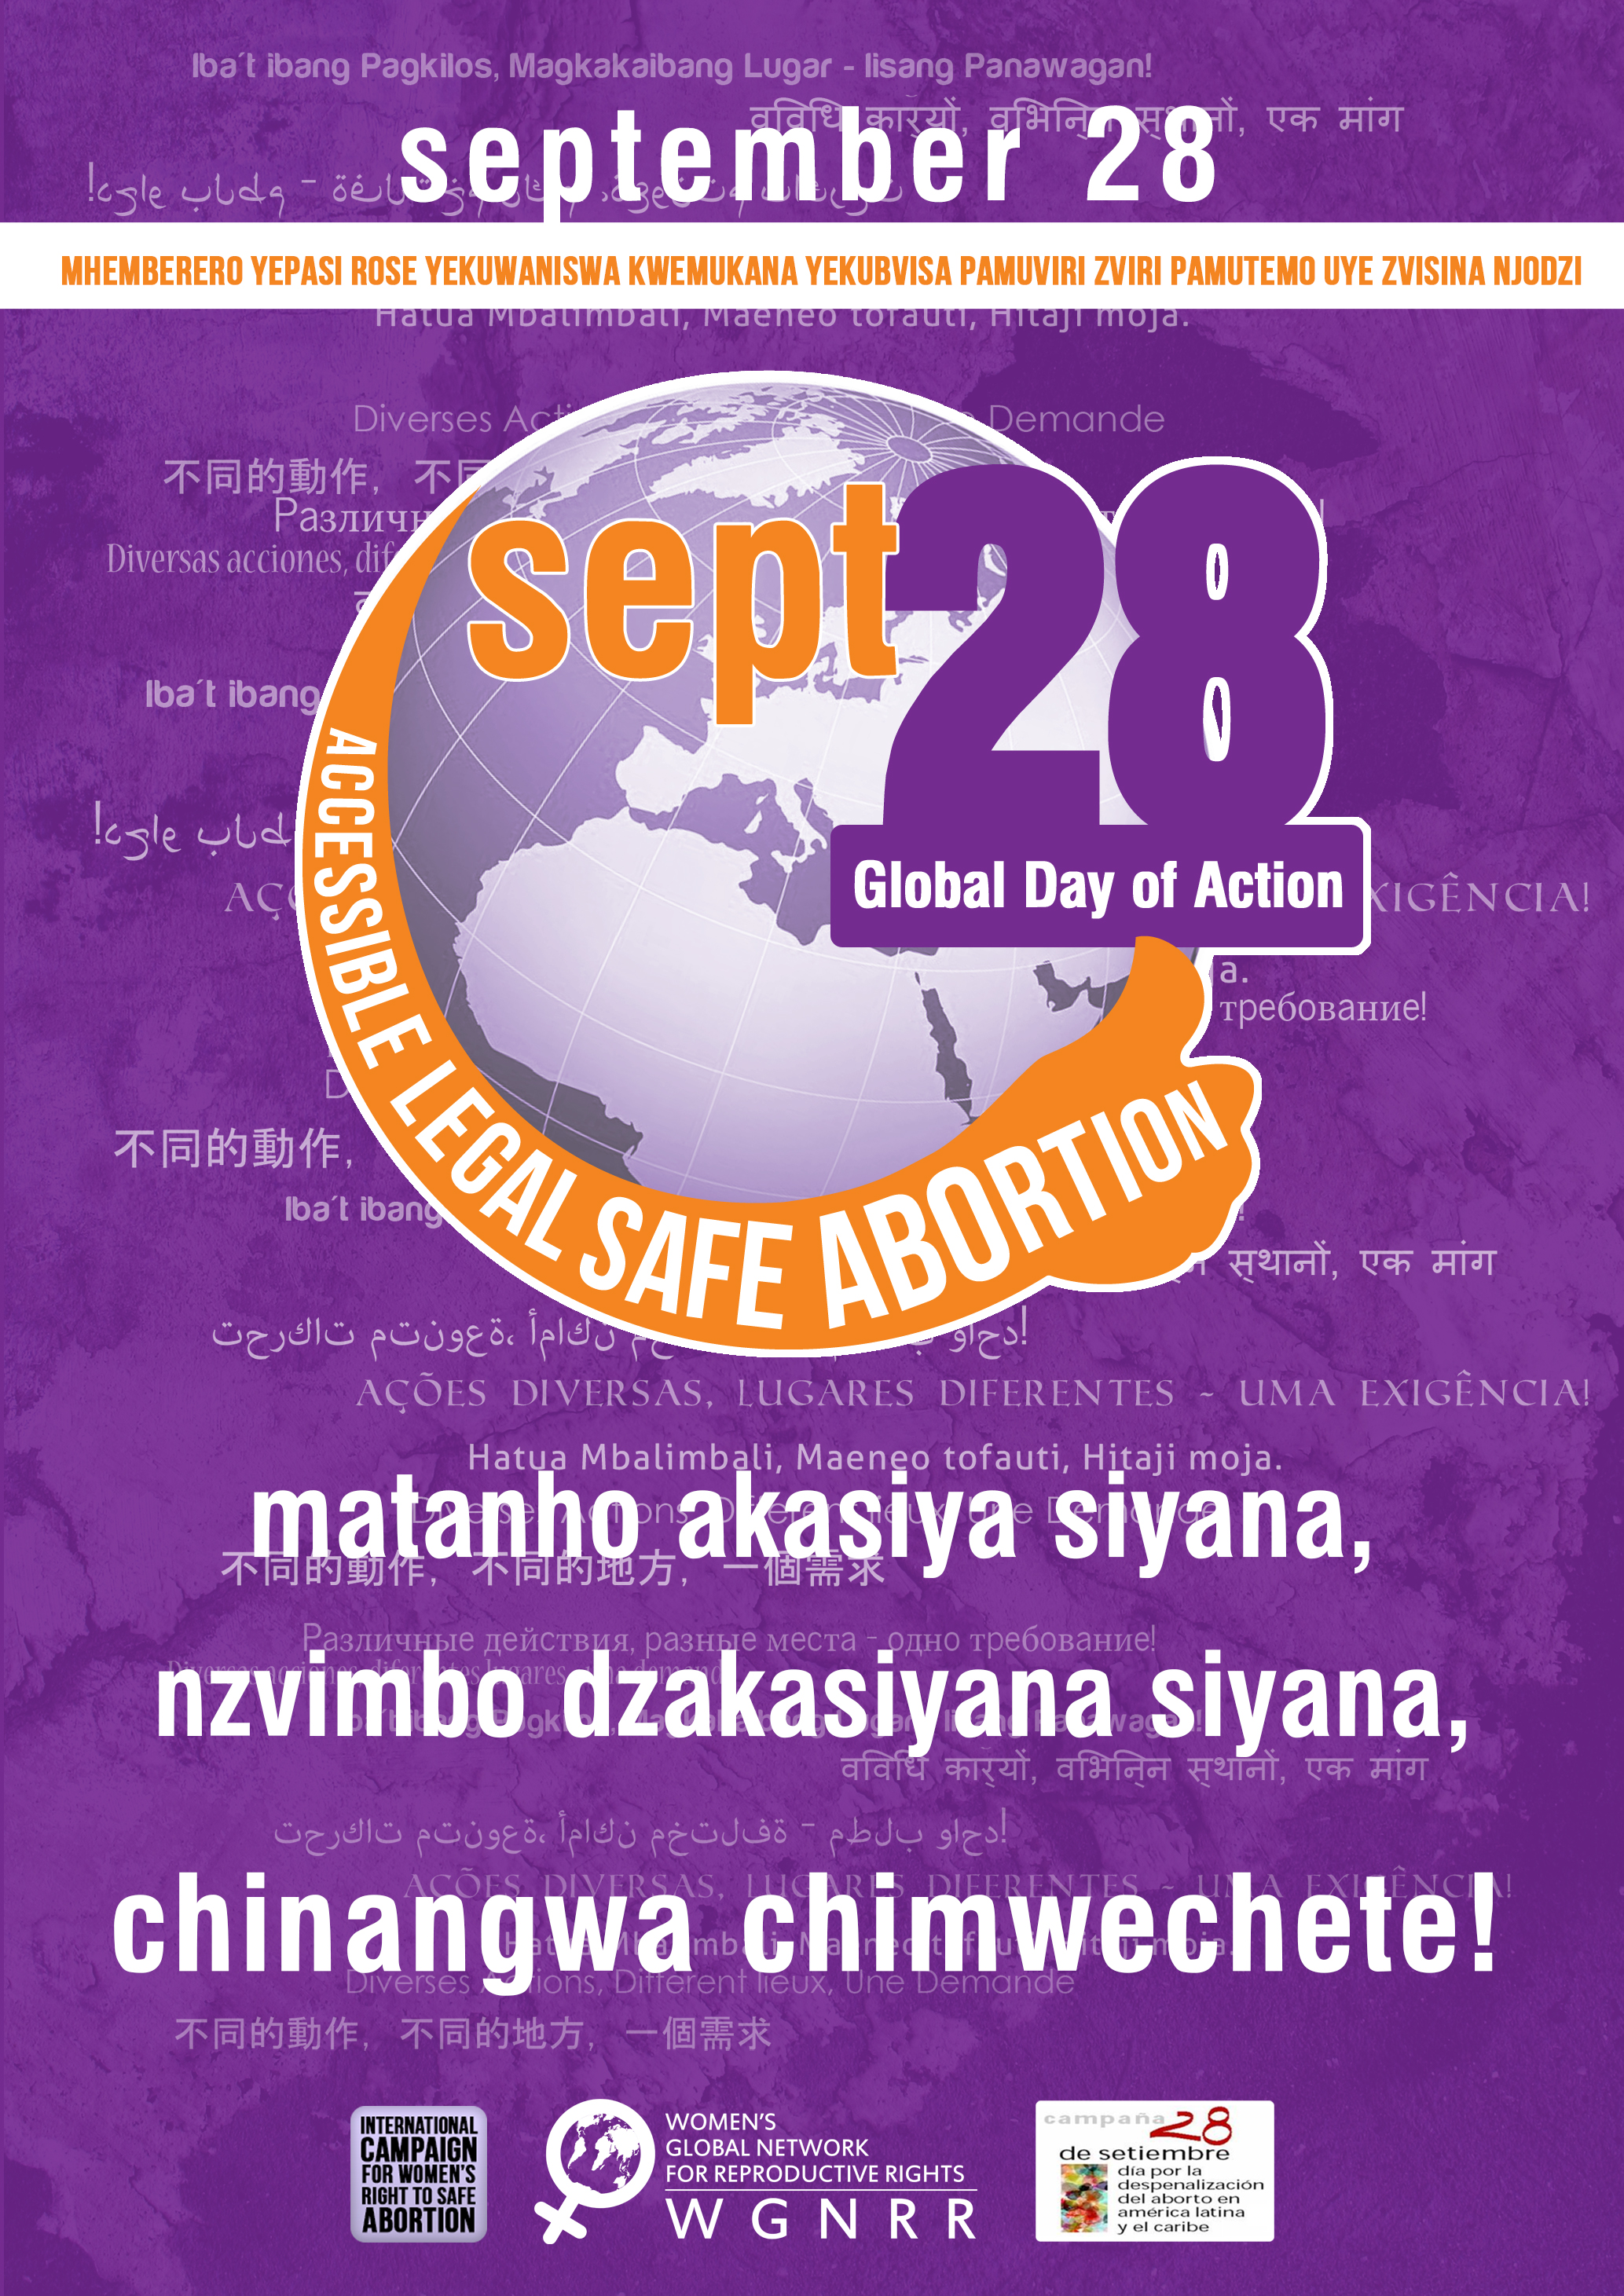 September 28 Banner Poster - SHONA (ZIMBABWE)